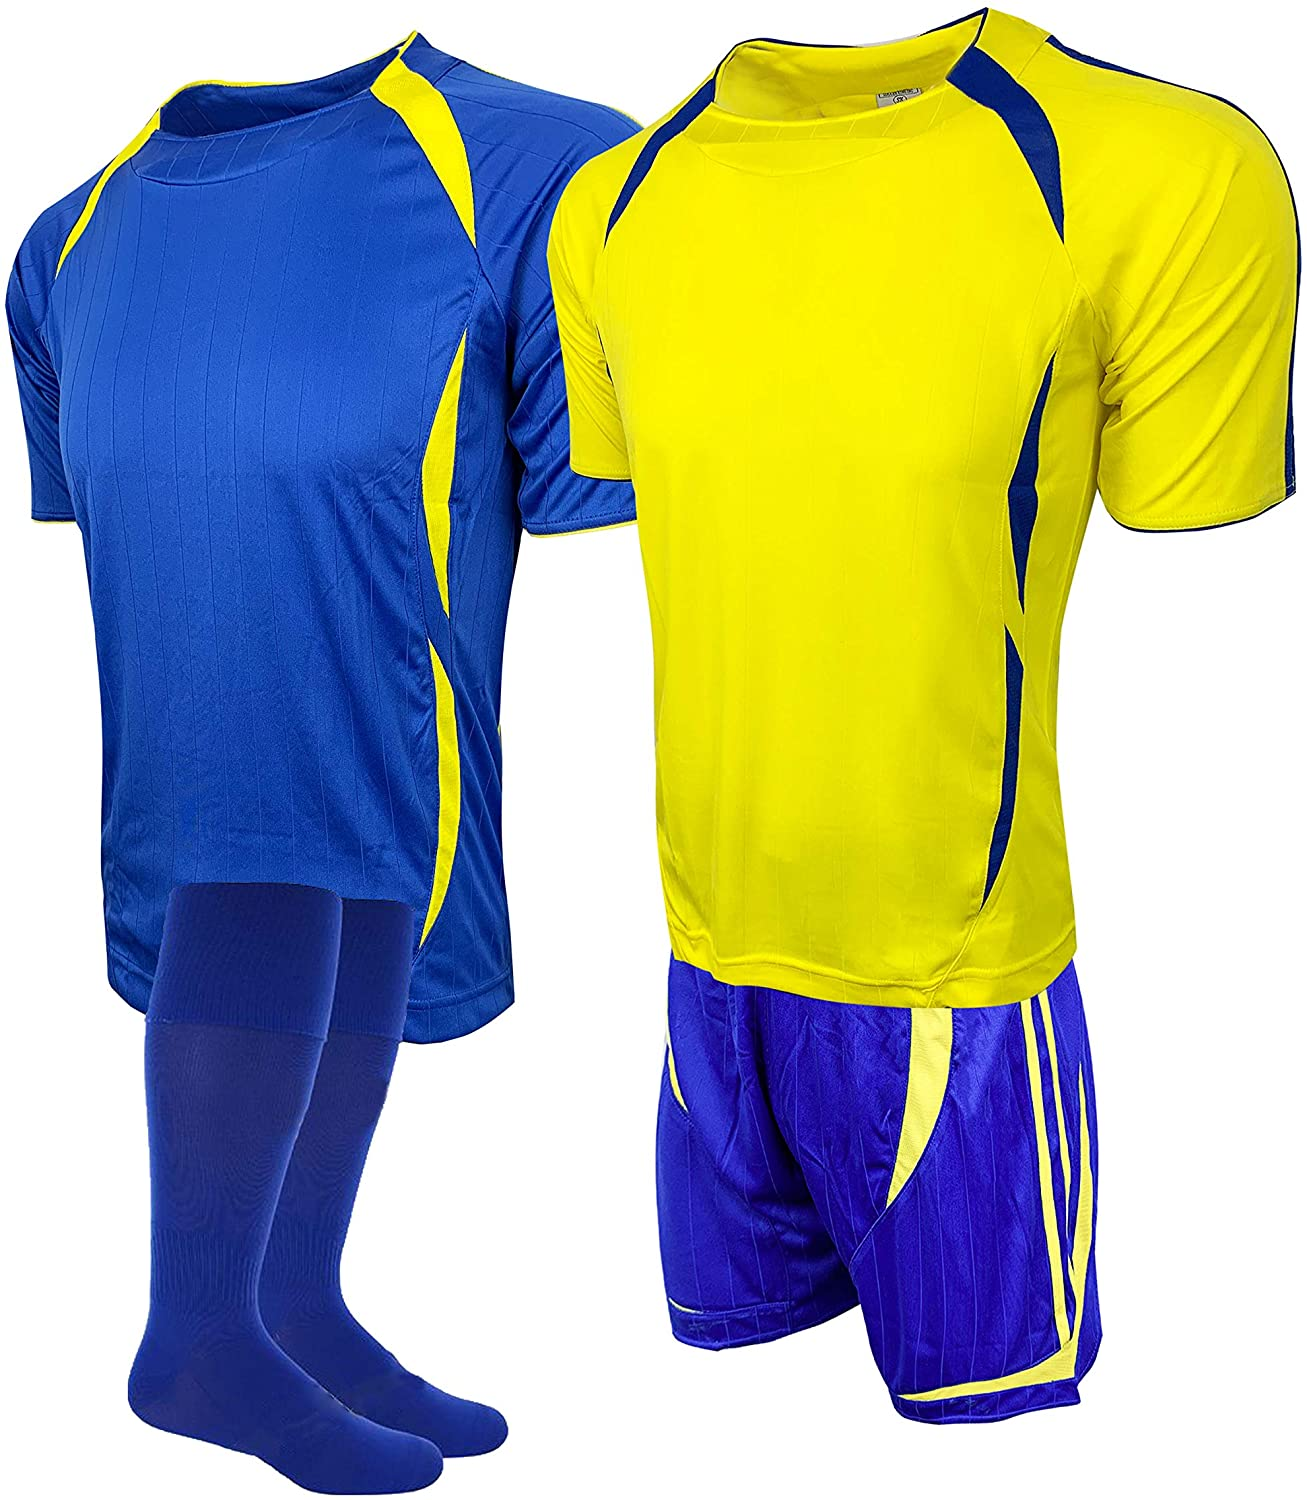 Soccer Uniforms for Teams, 4pcs Set (Two Jerseys, One Short and One Pair of Socks)